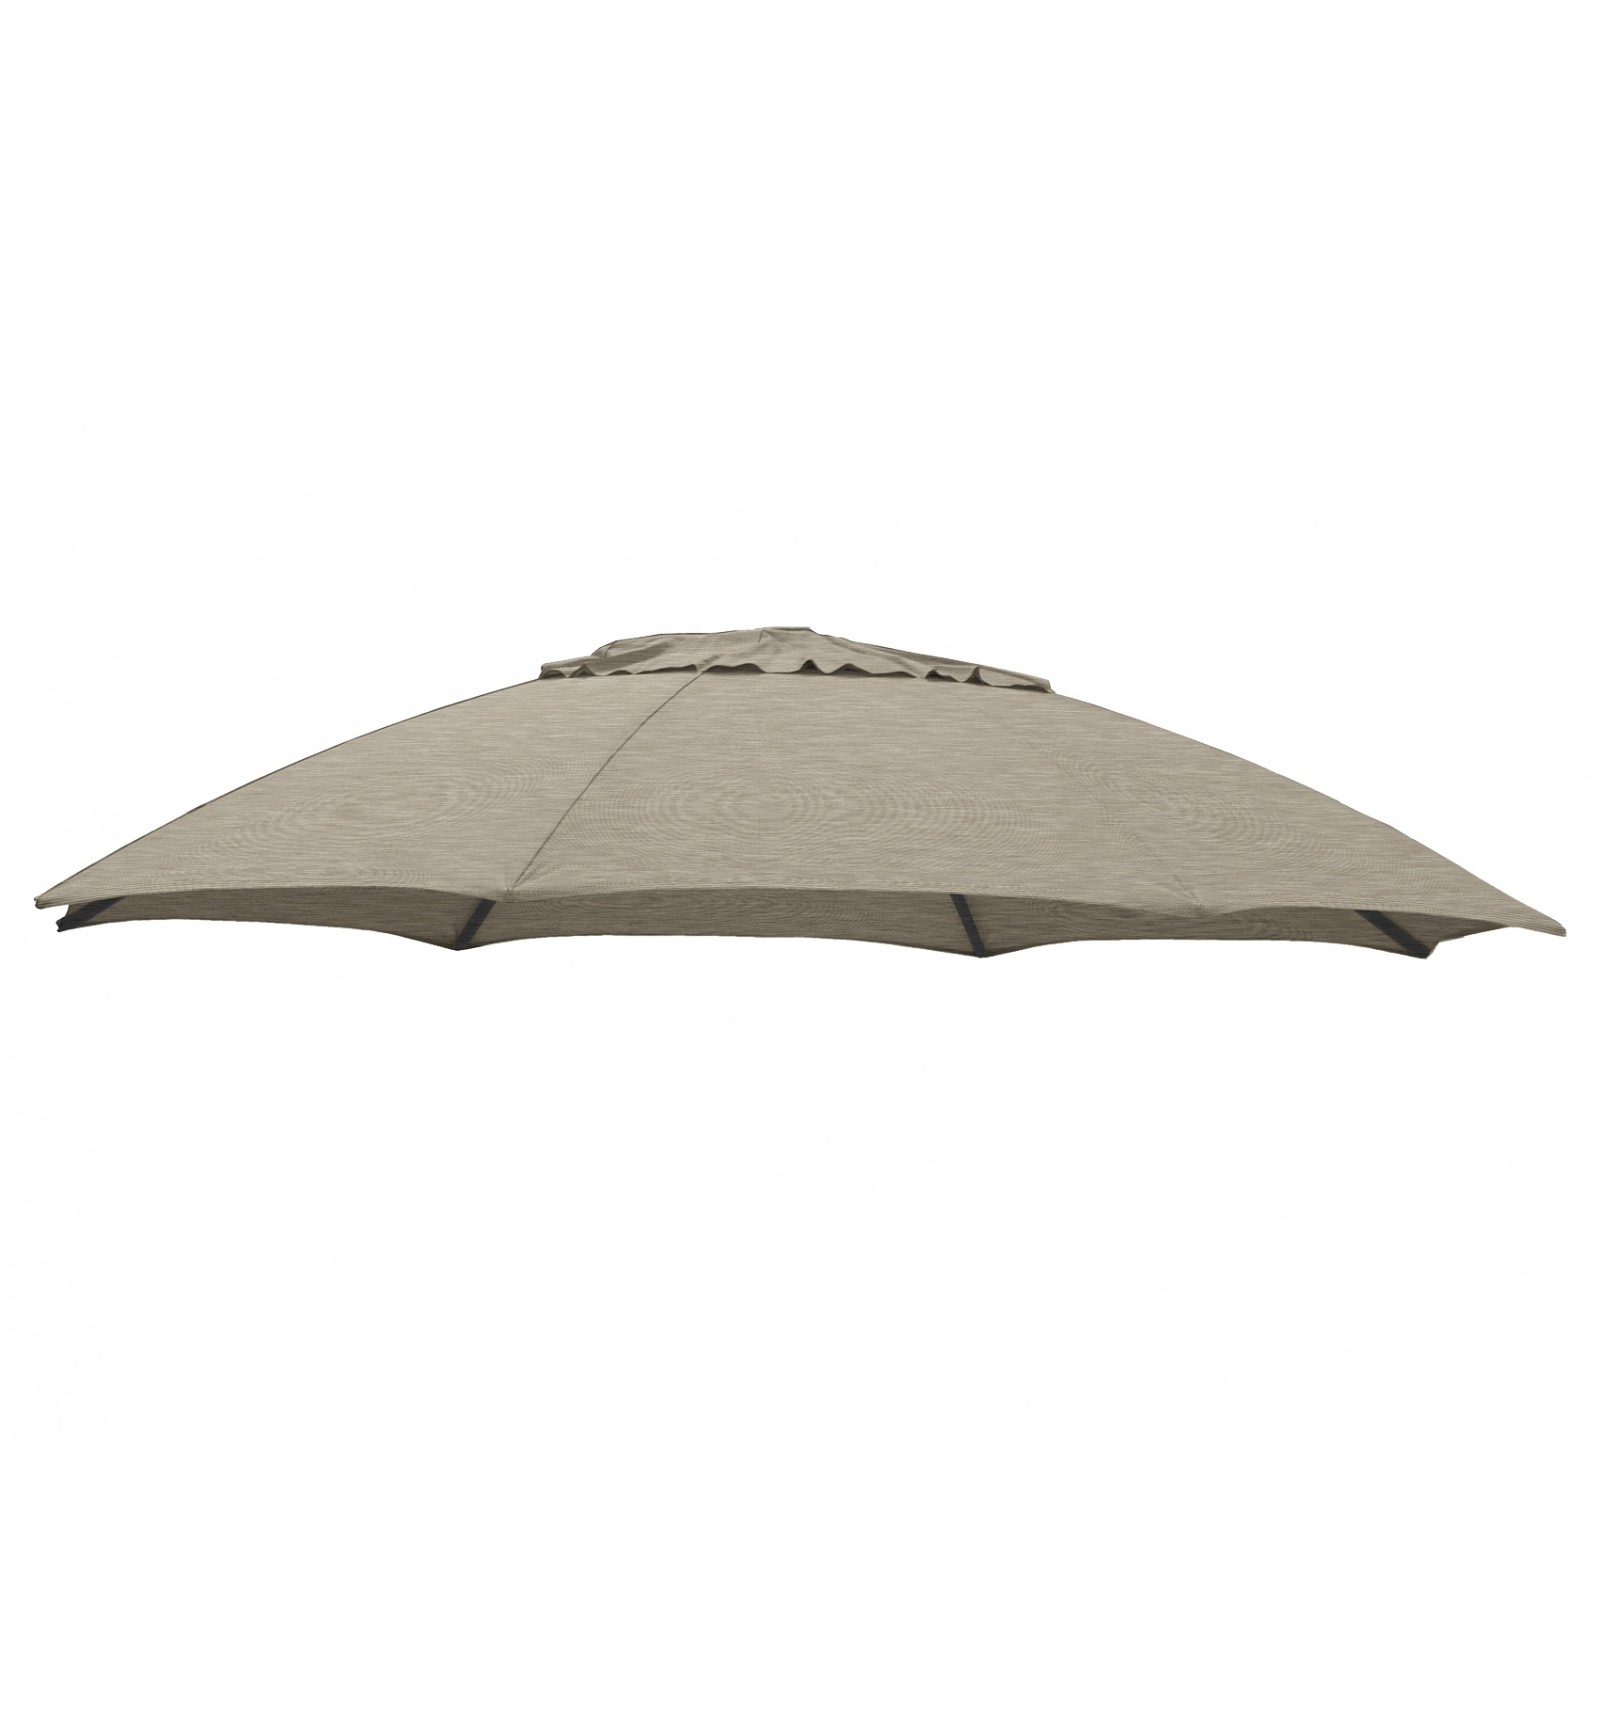 Parasol Taupe Olefin Taupe Replacement Canvas For Easy Sun Parasol 375